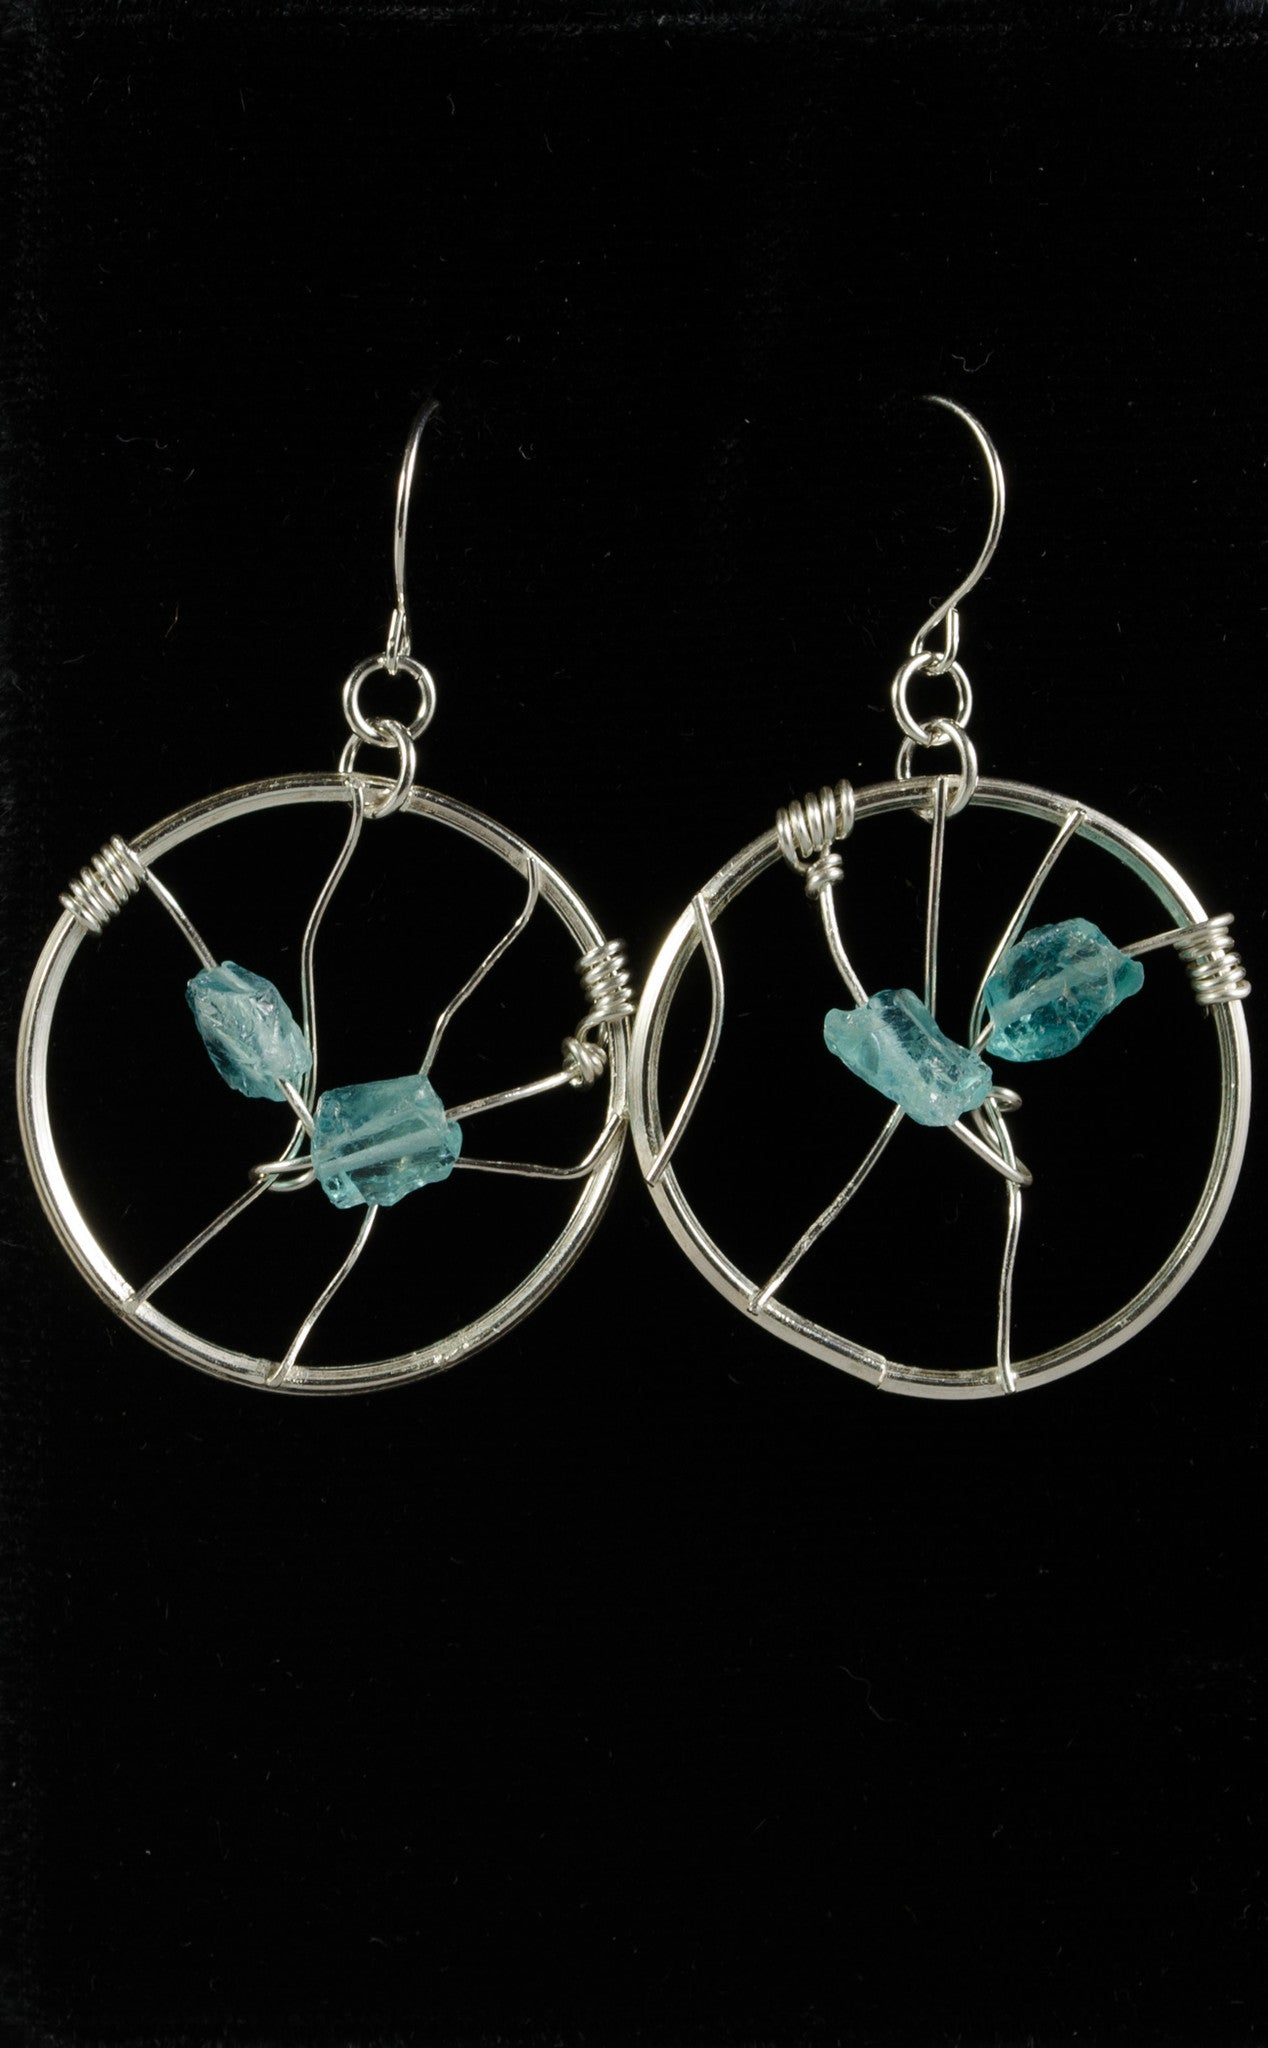 collection earrings medium product med dona water large apatite with copy miller llc jewelry rain artisan designs